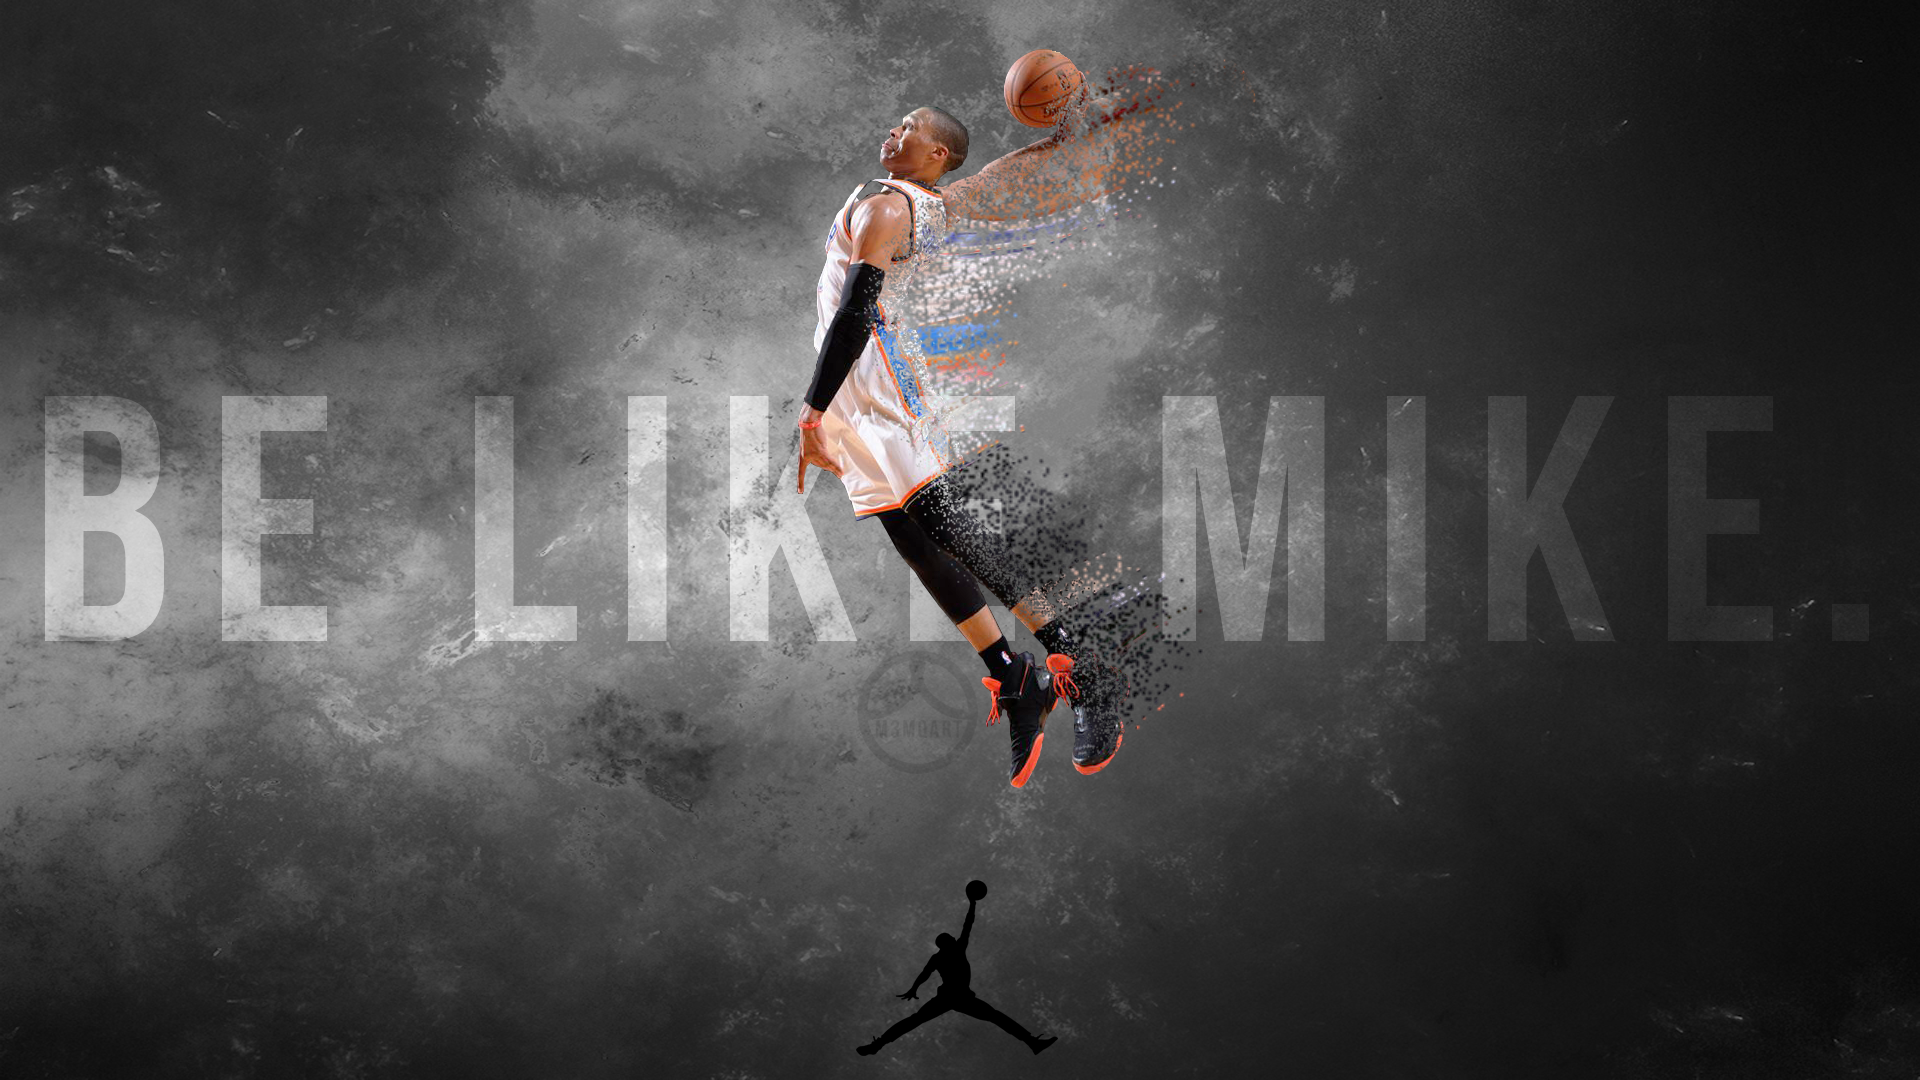 Free Russell Westbrook Pictures On High Resolution Wallpaper Westbrook Wallpapers Russell Westbrook Wallpaper High Resolution Wallpapers